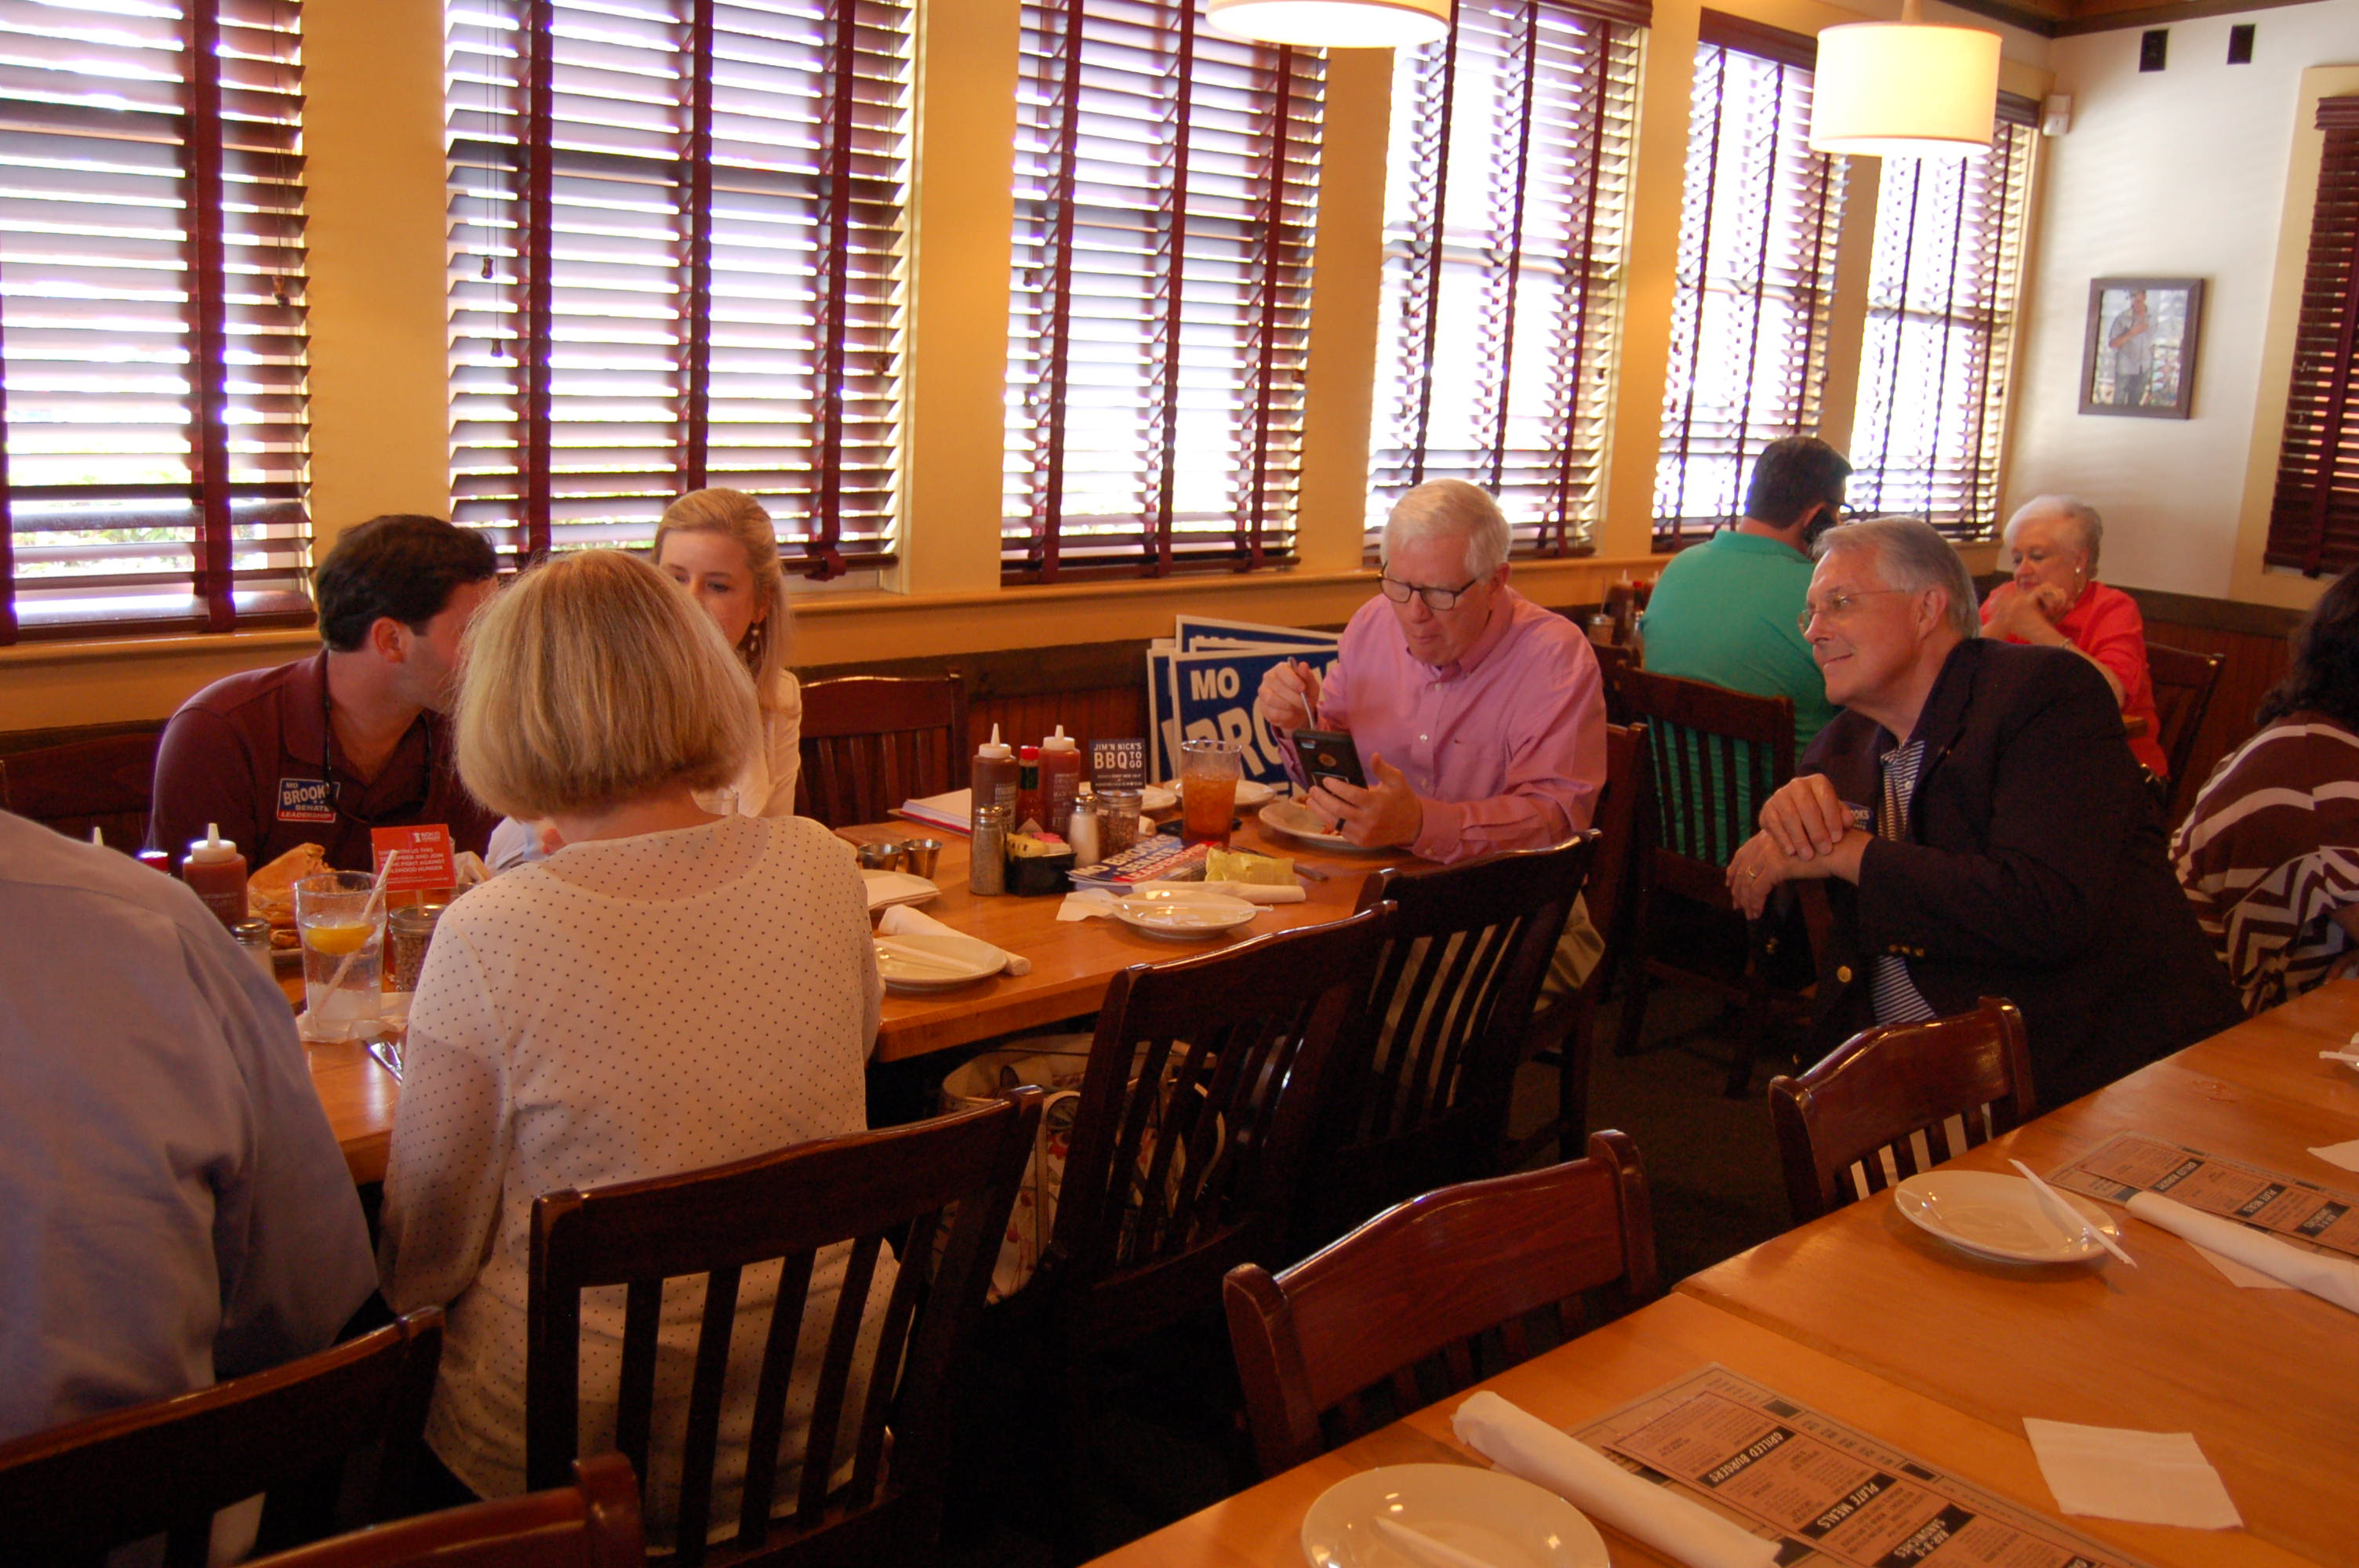 Congressman Mo Brooks has lunch with Trussville citizens while on tour